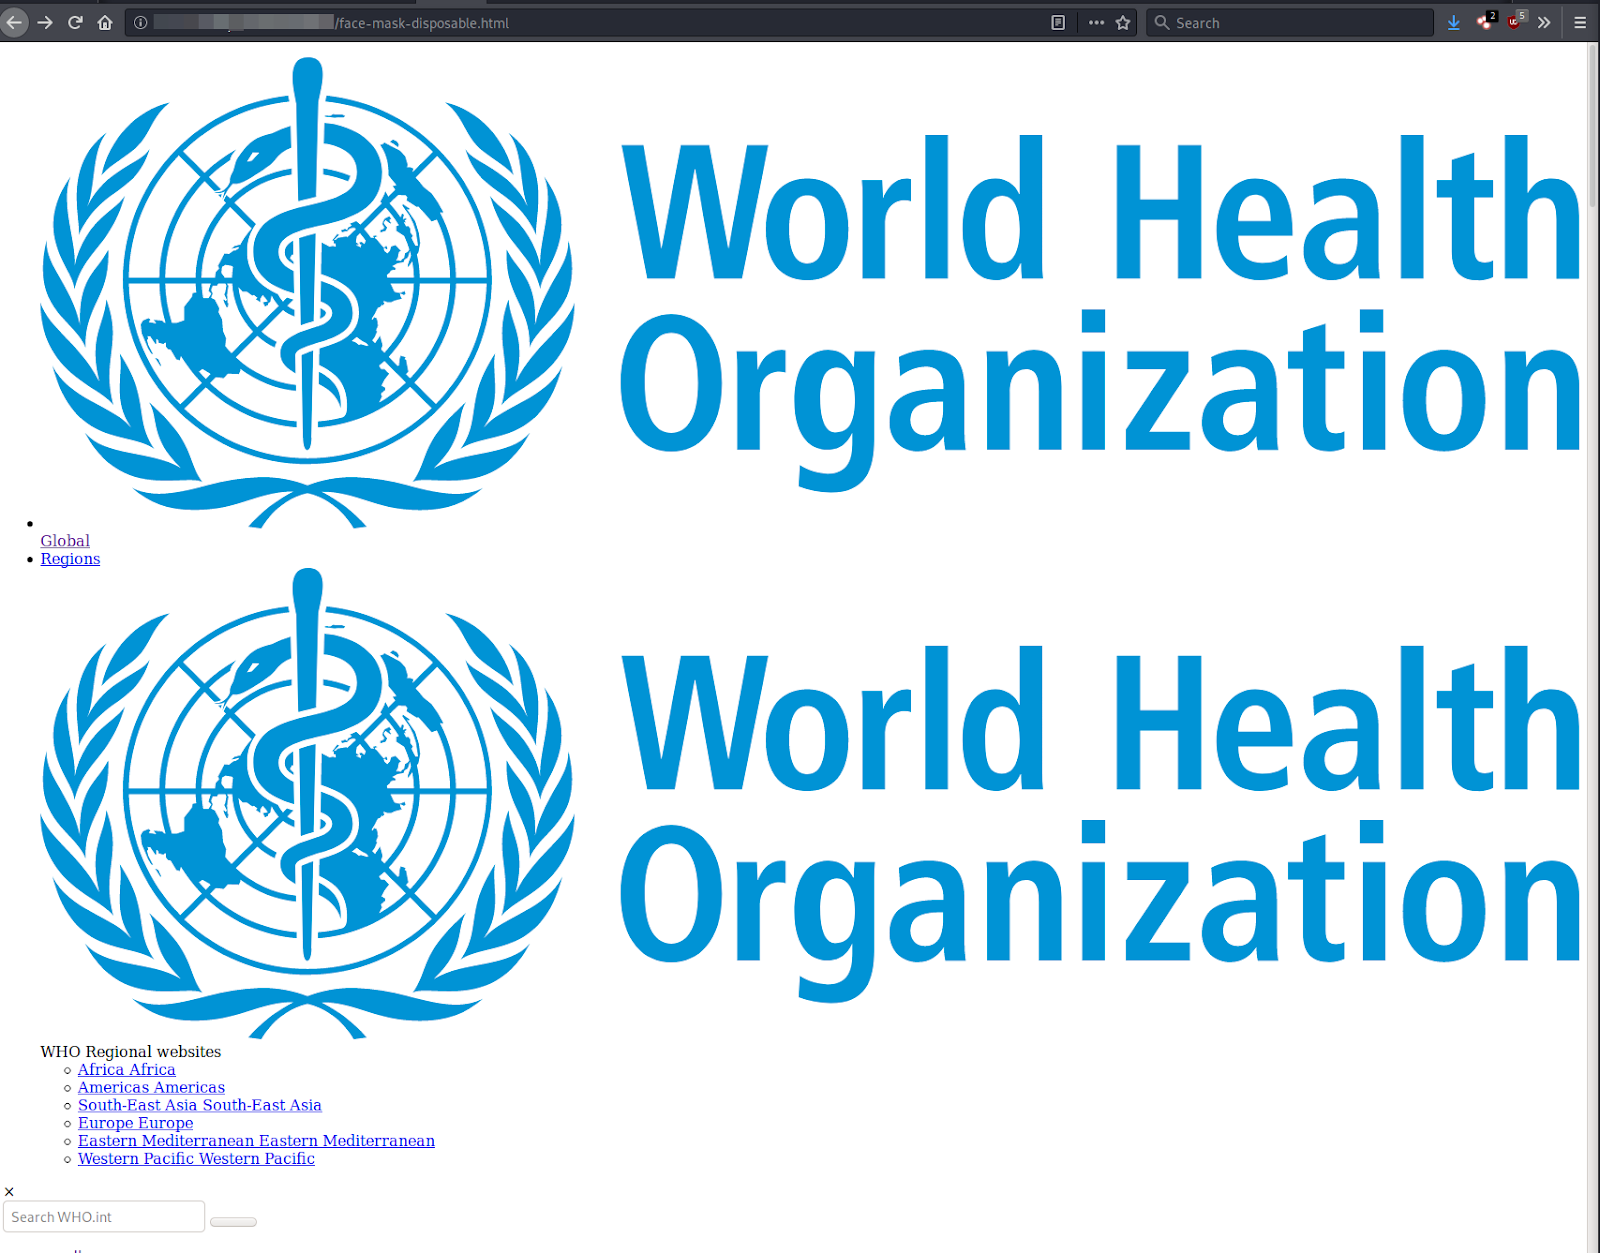 World Health Organization spam image